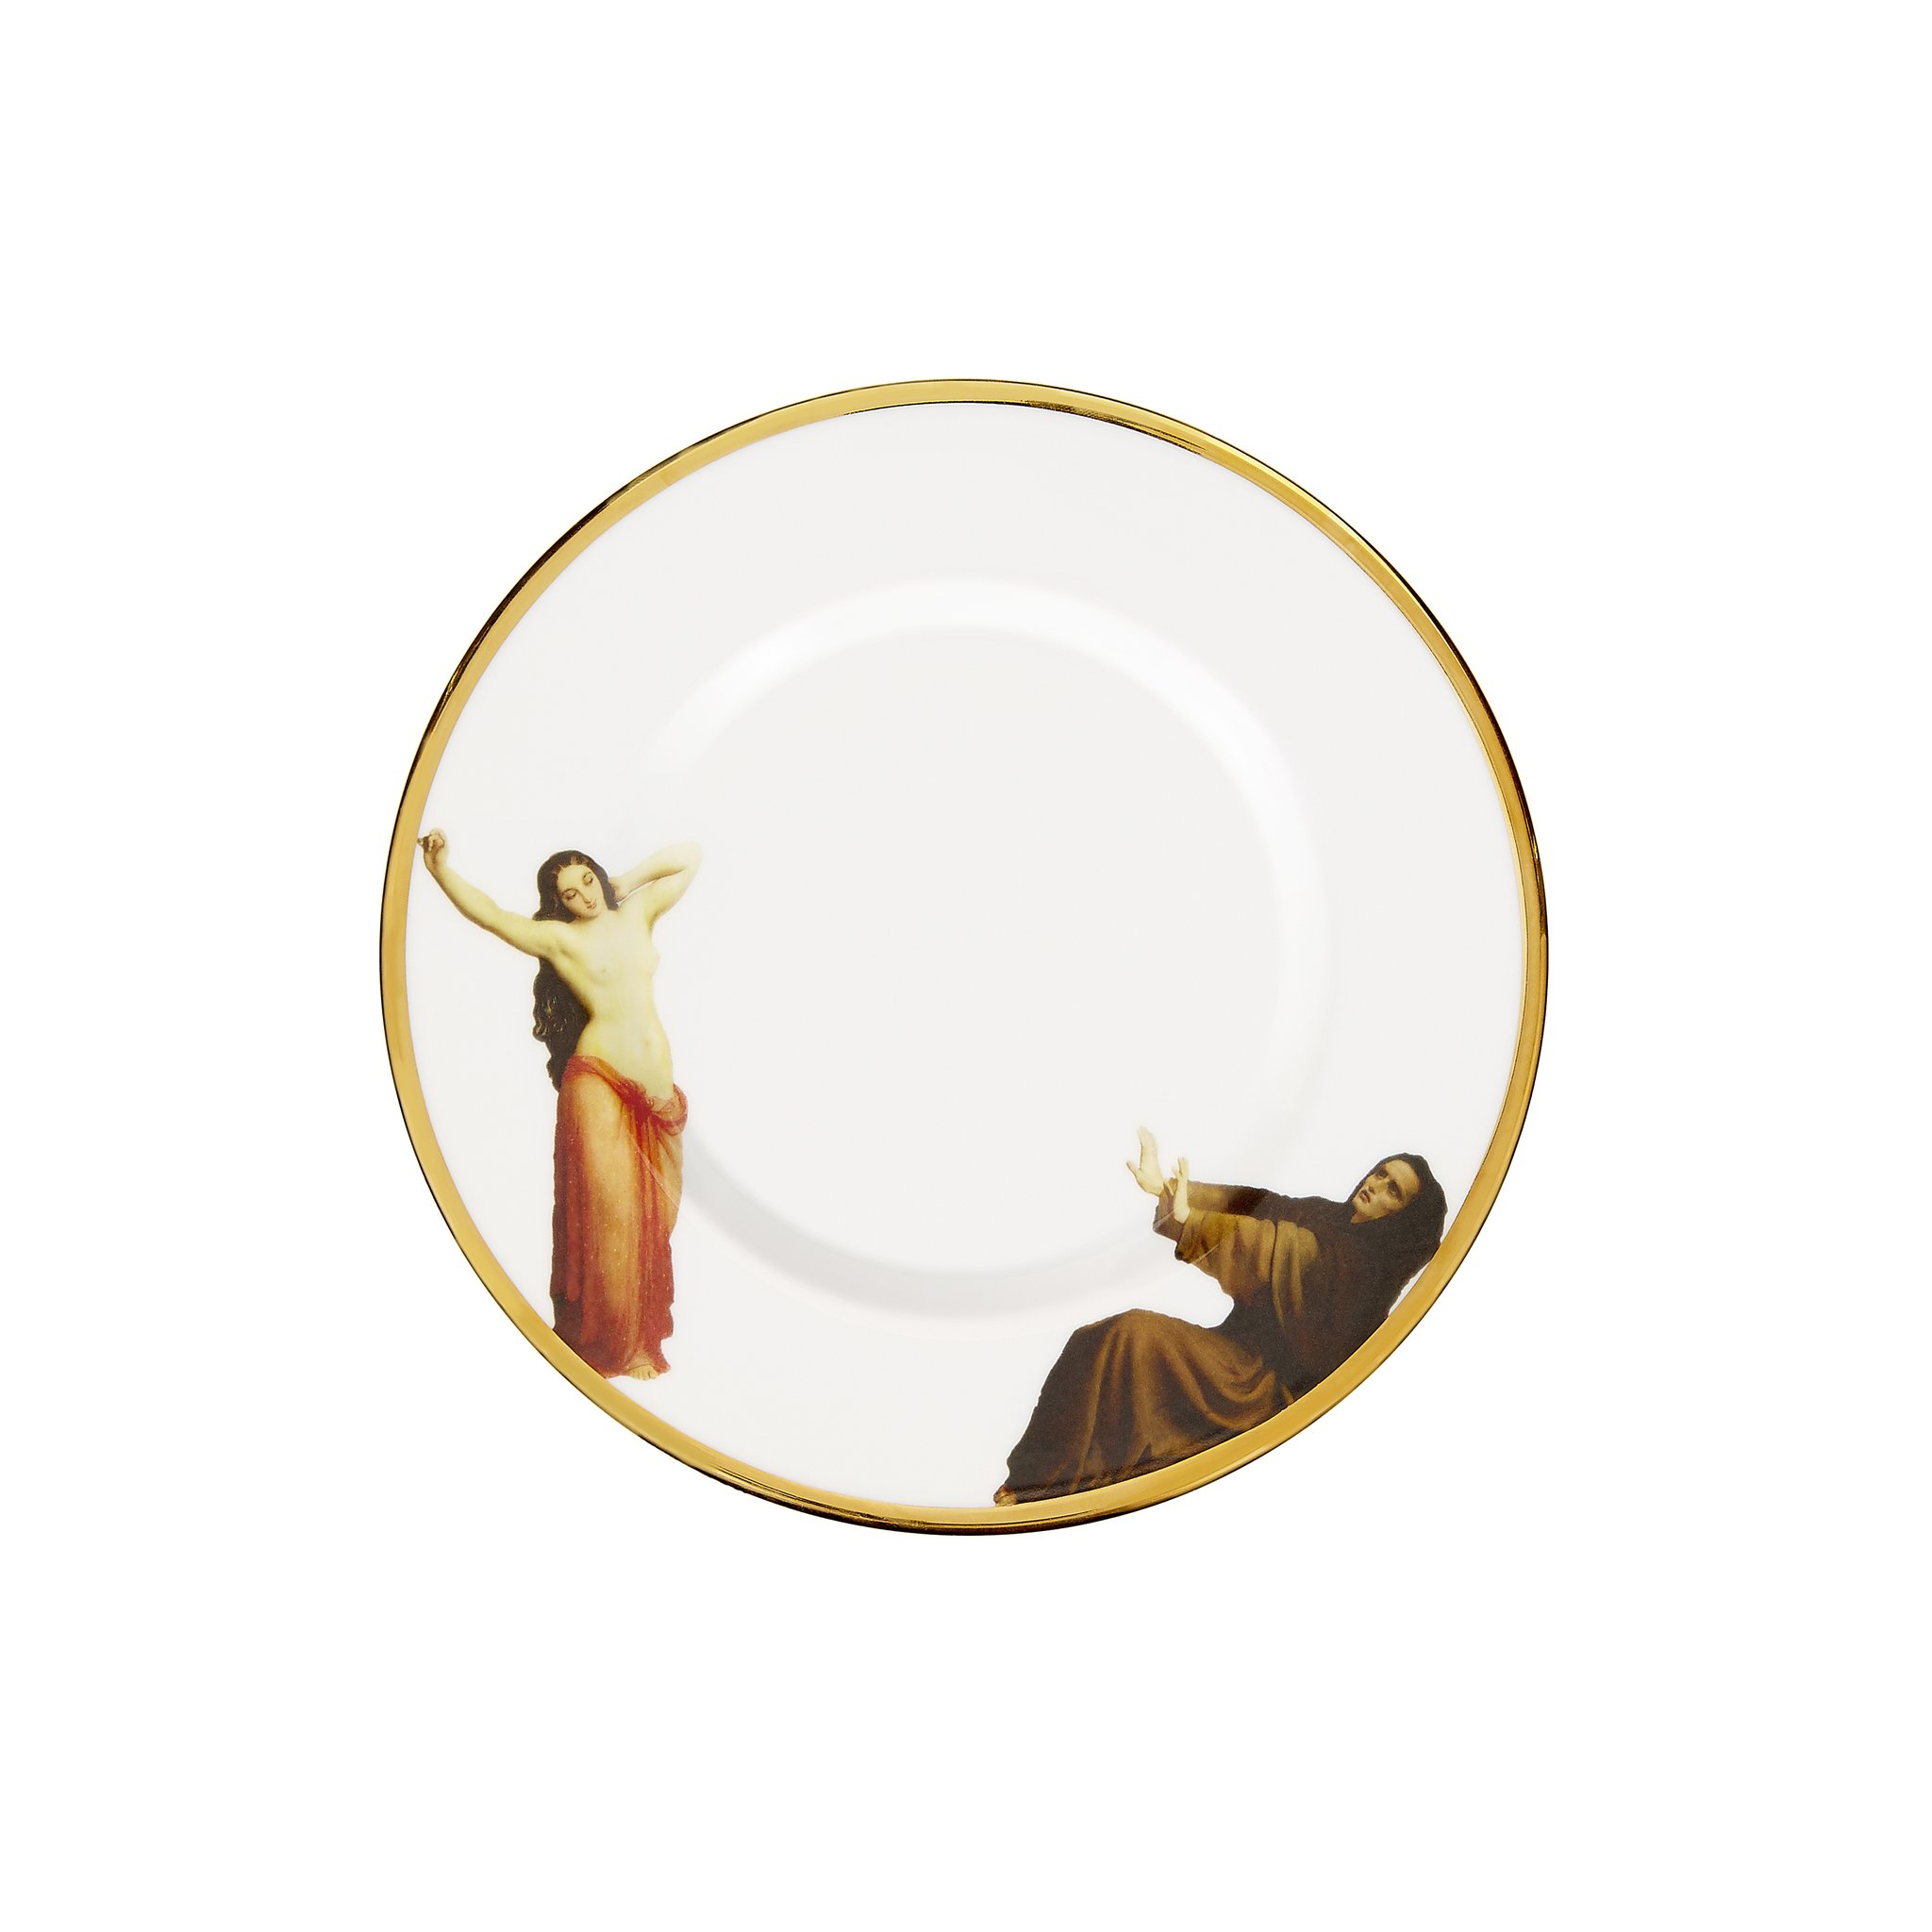 The_Temptation_of_St_Hilarion_Small_Plate_1_1024x1024@2x-1.jpg